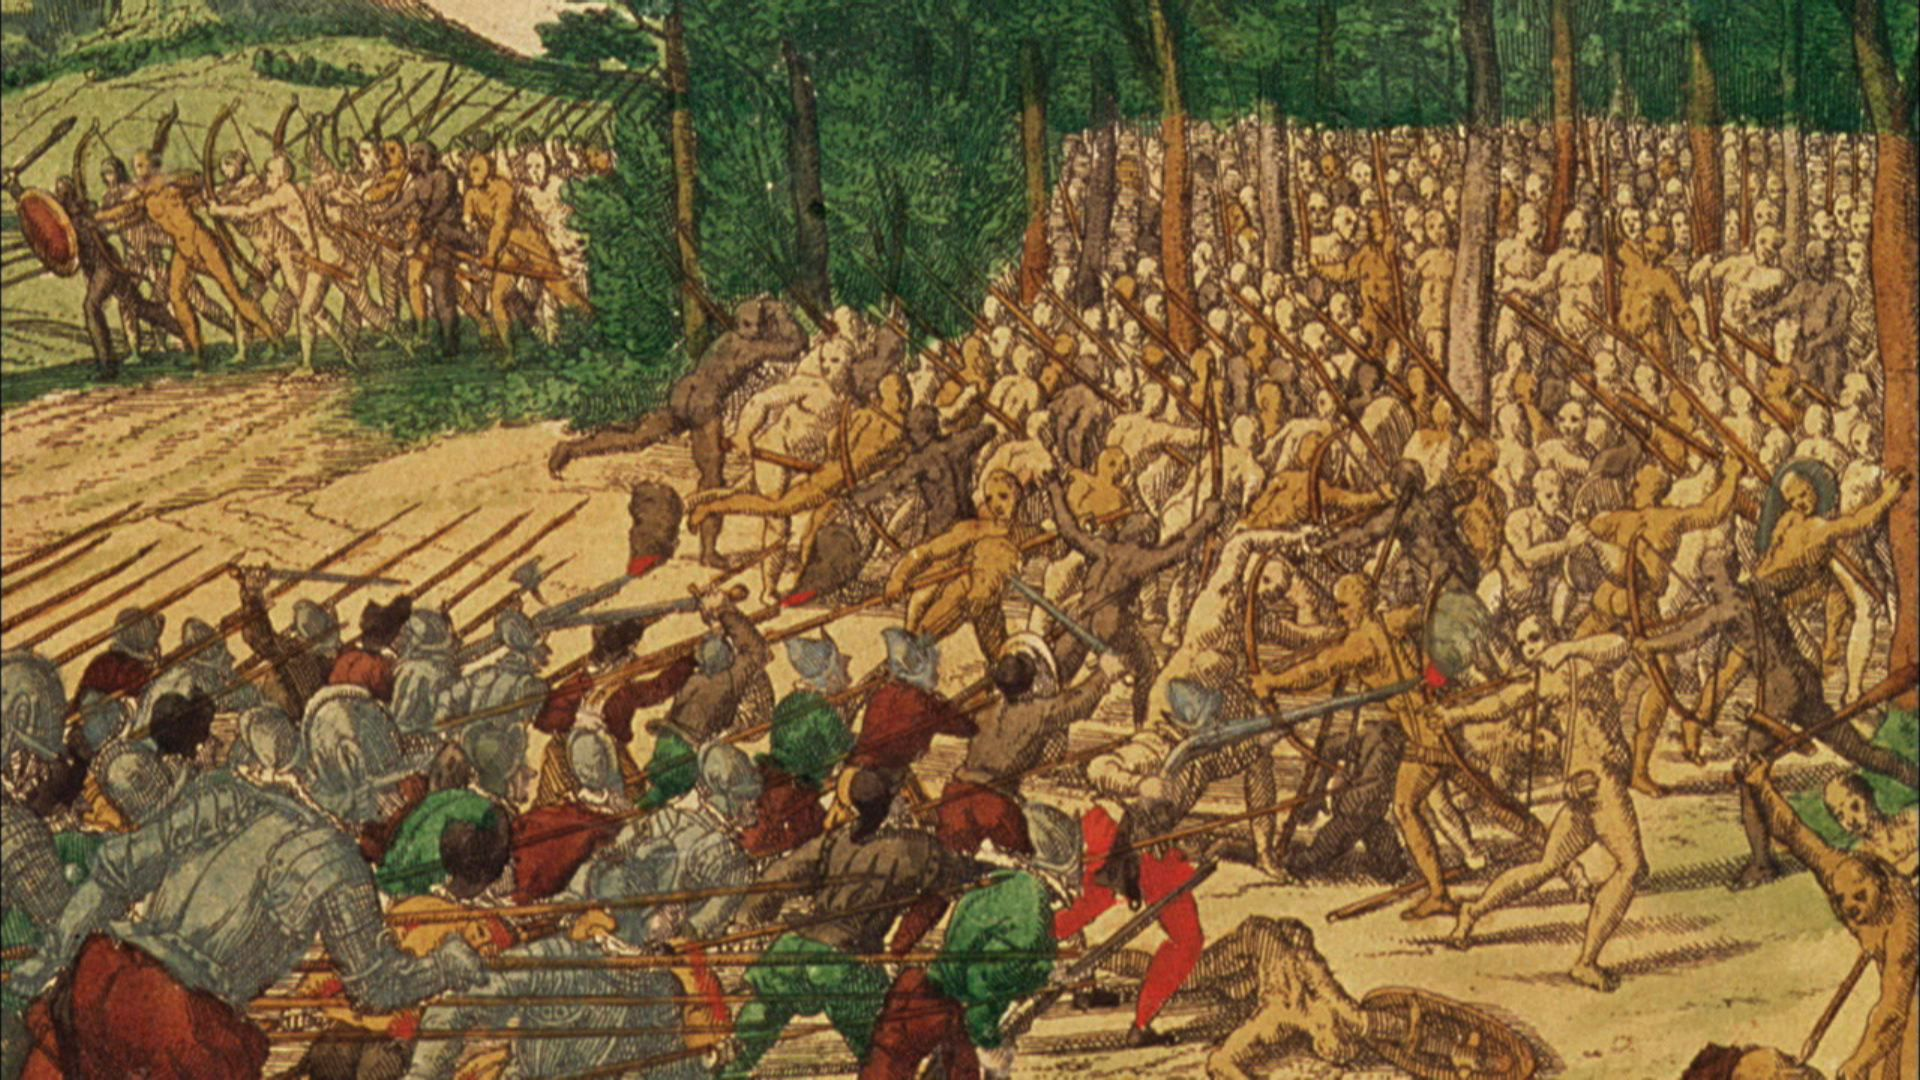 An image of a battle that occurred when the pueblo people got tired of oppression and drove Spanish settlers away in the new world